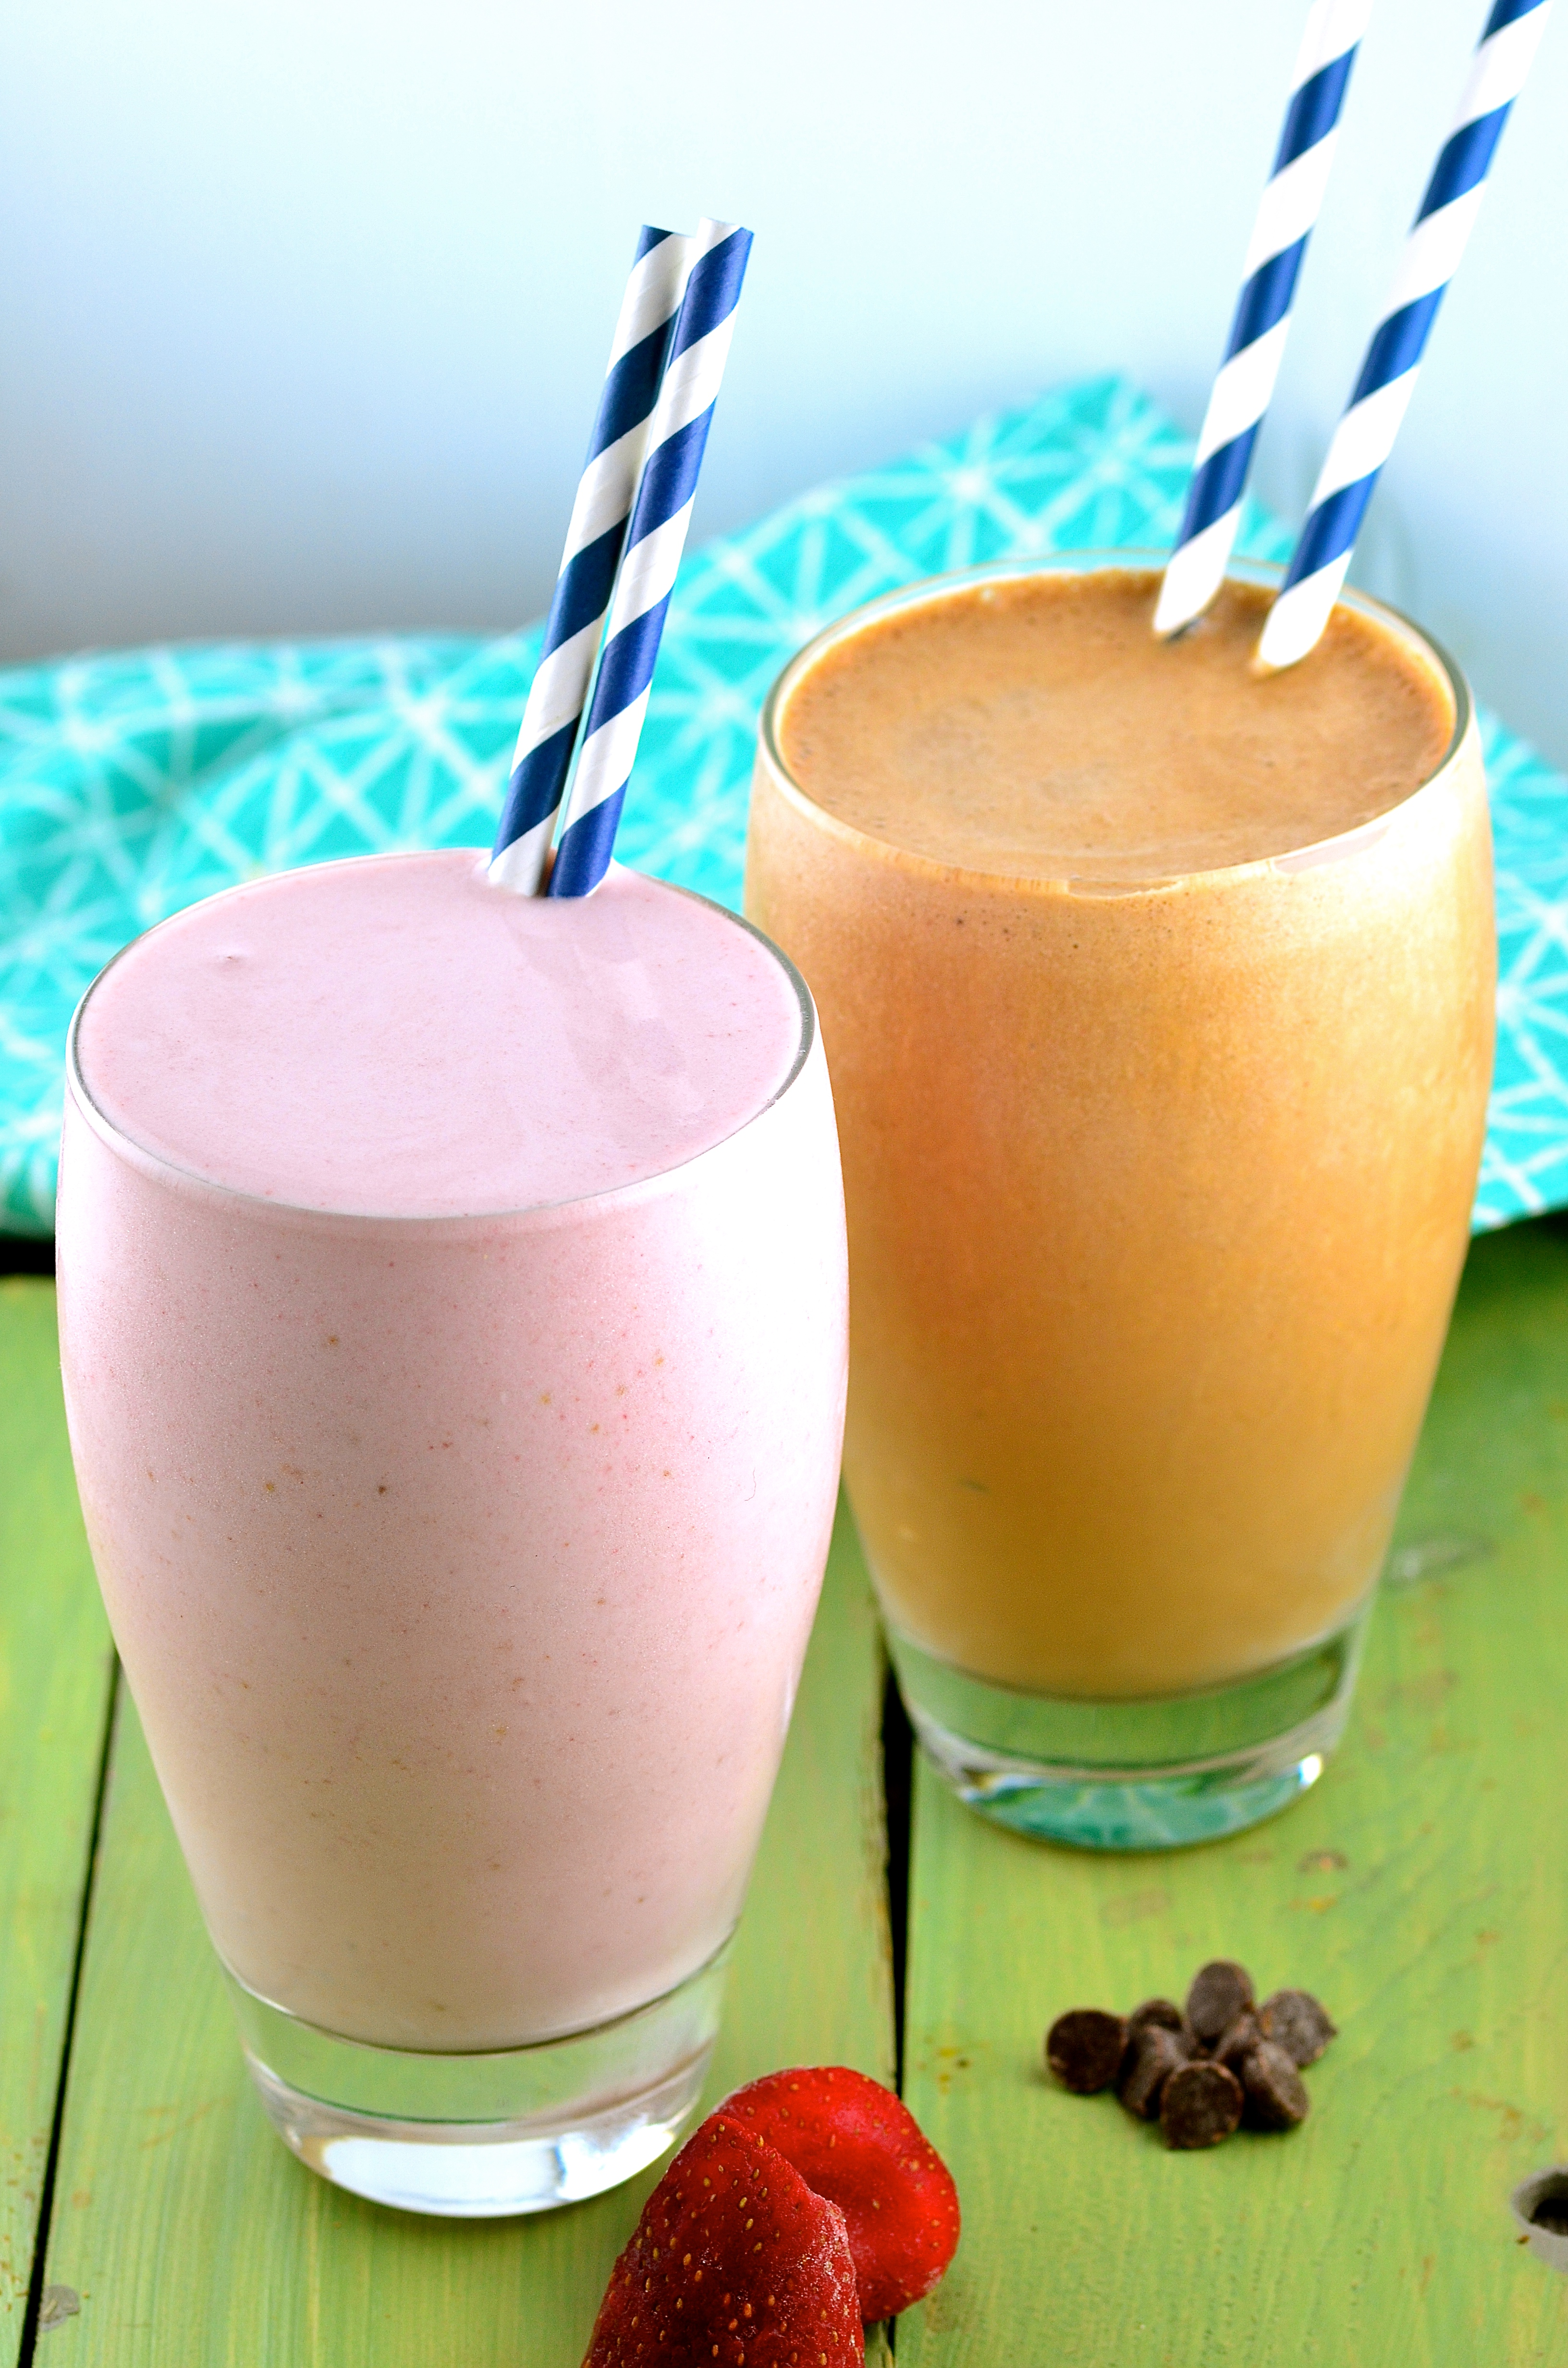 Chocolate and Strawberry Protein Shakes - May I Have That Recipe